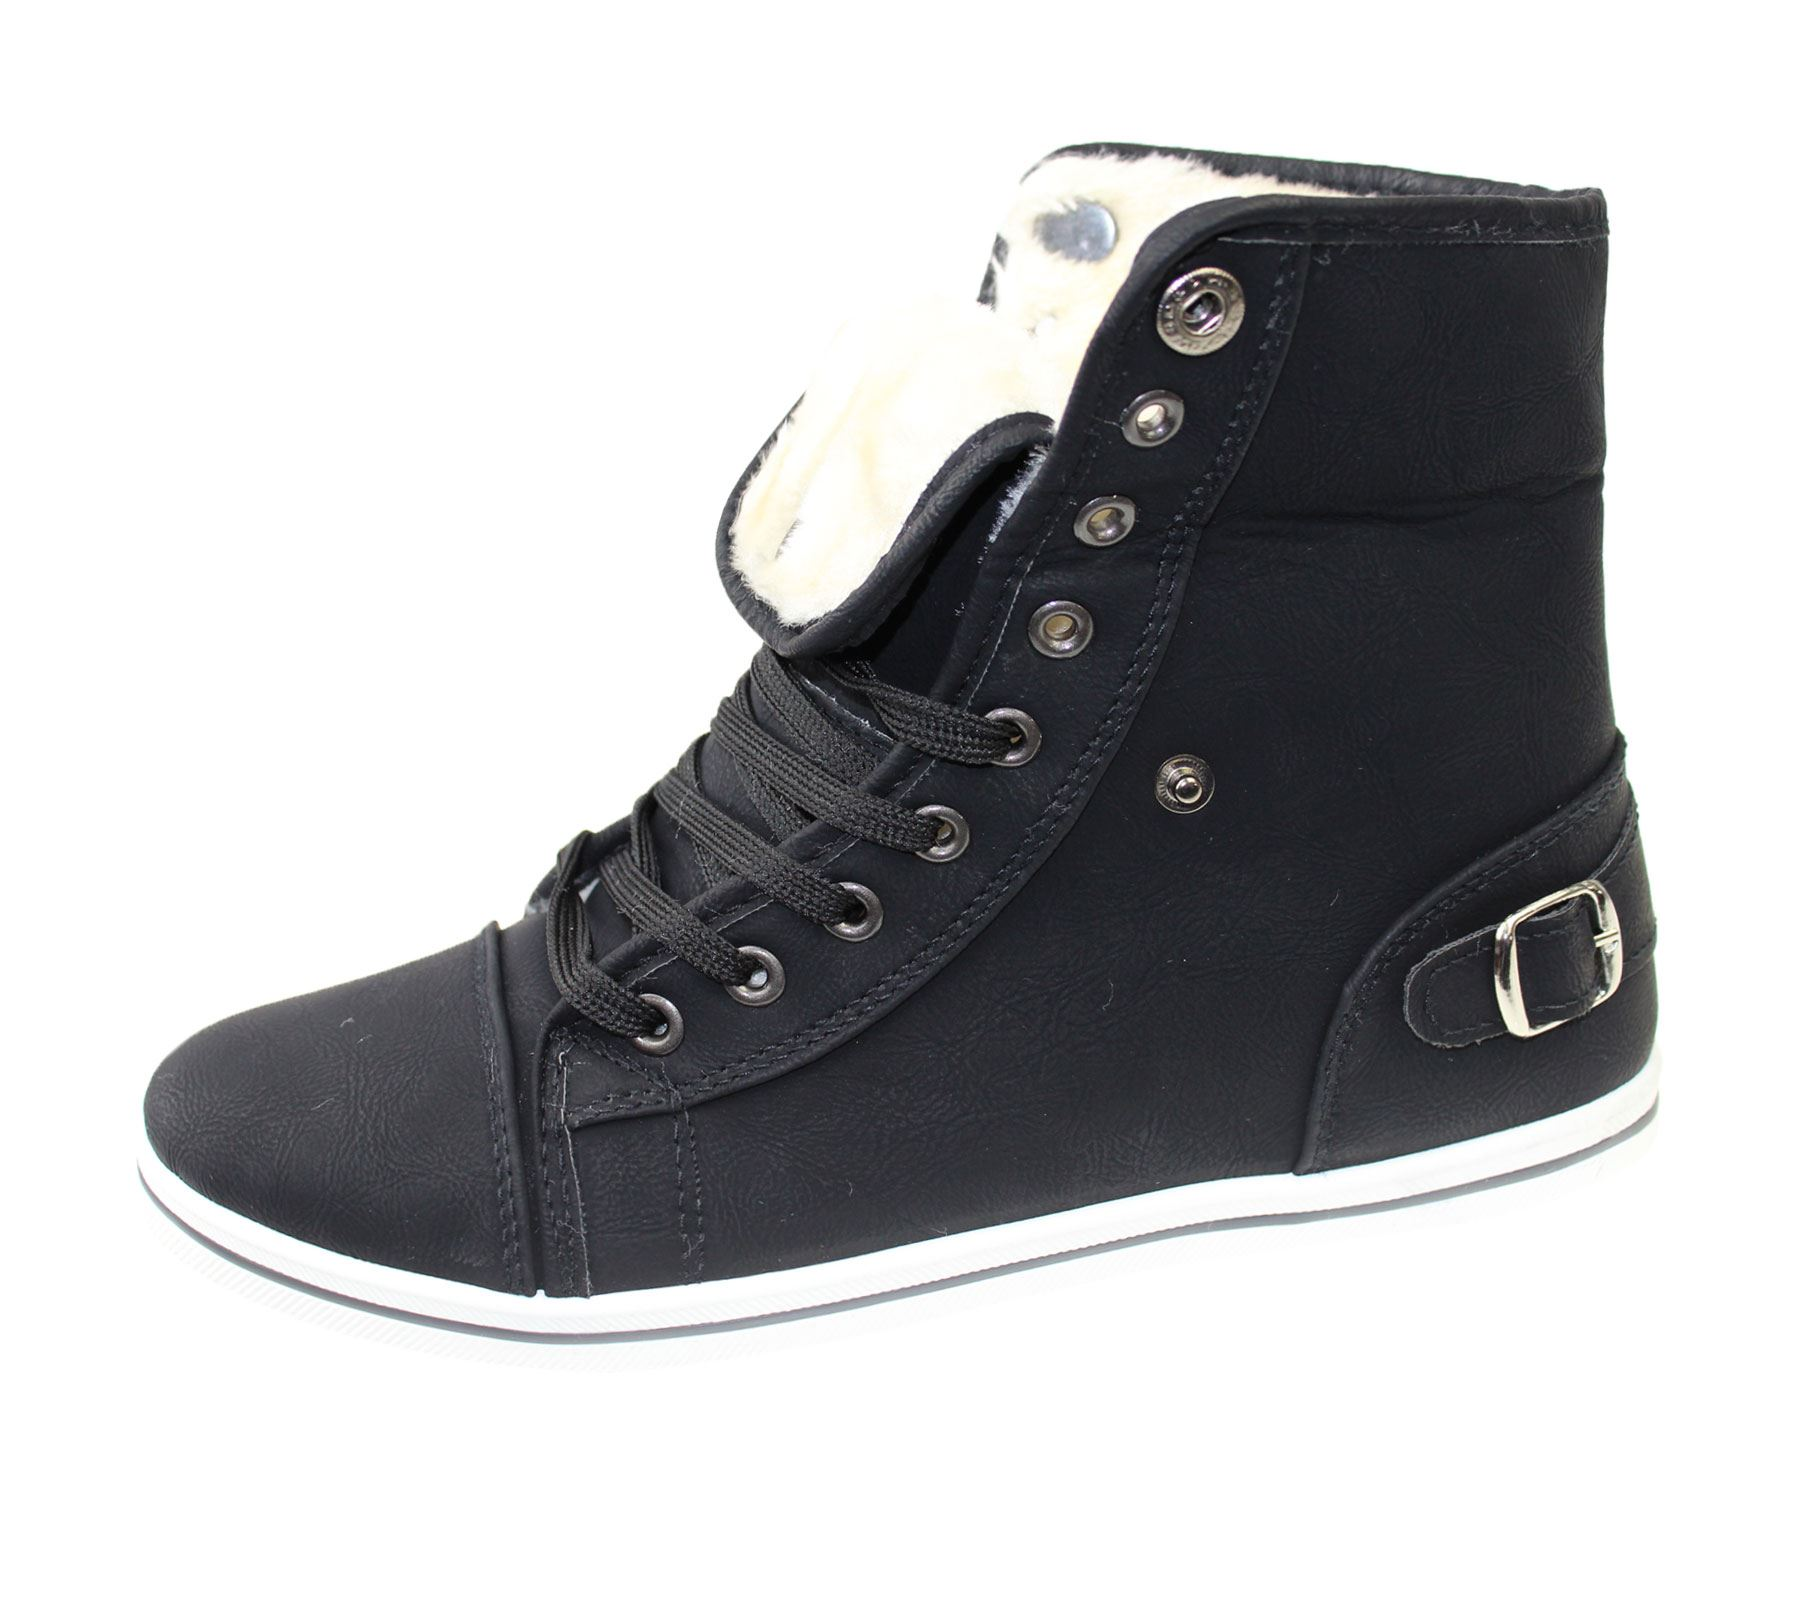 Girls-Boots-Womens-Warm-Lined-High-Top-Ankle-Trainer-Ladies-Winter-Shoes-Size miniatura 80